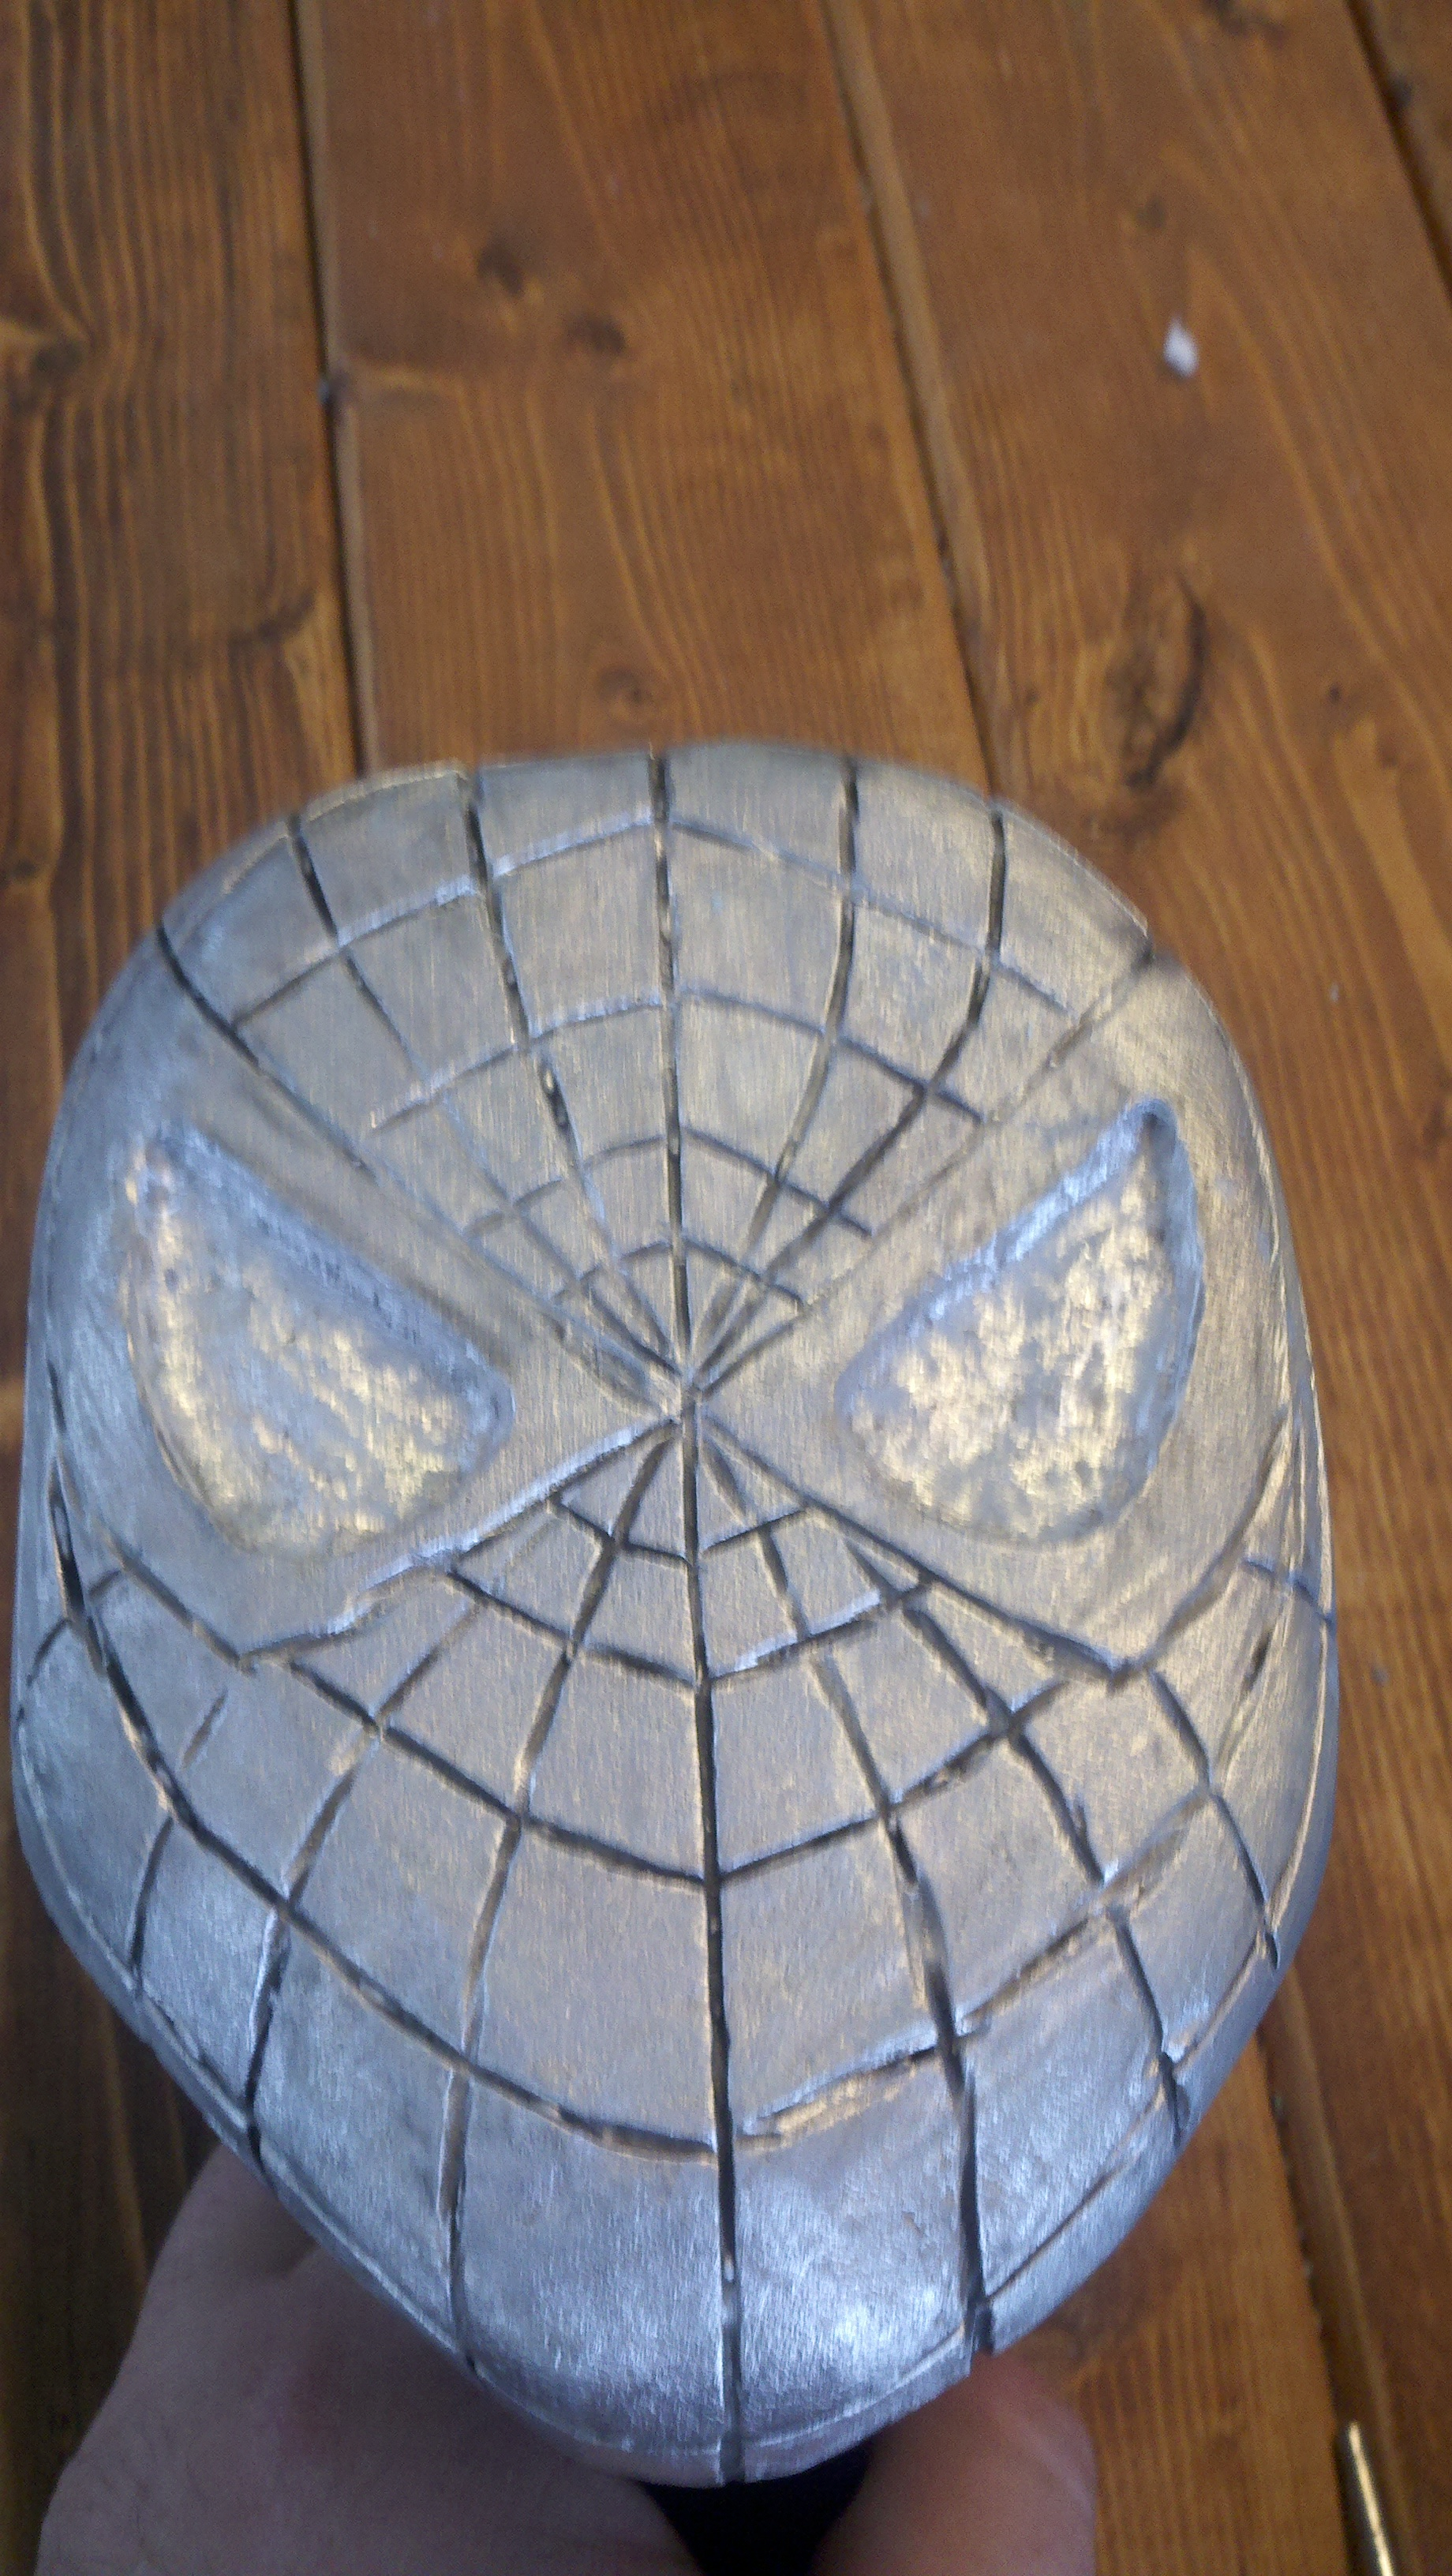 Spider-man Lost Foam Investment Casting